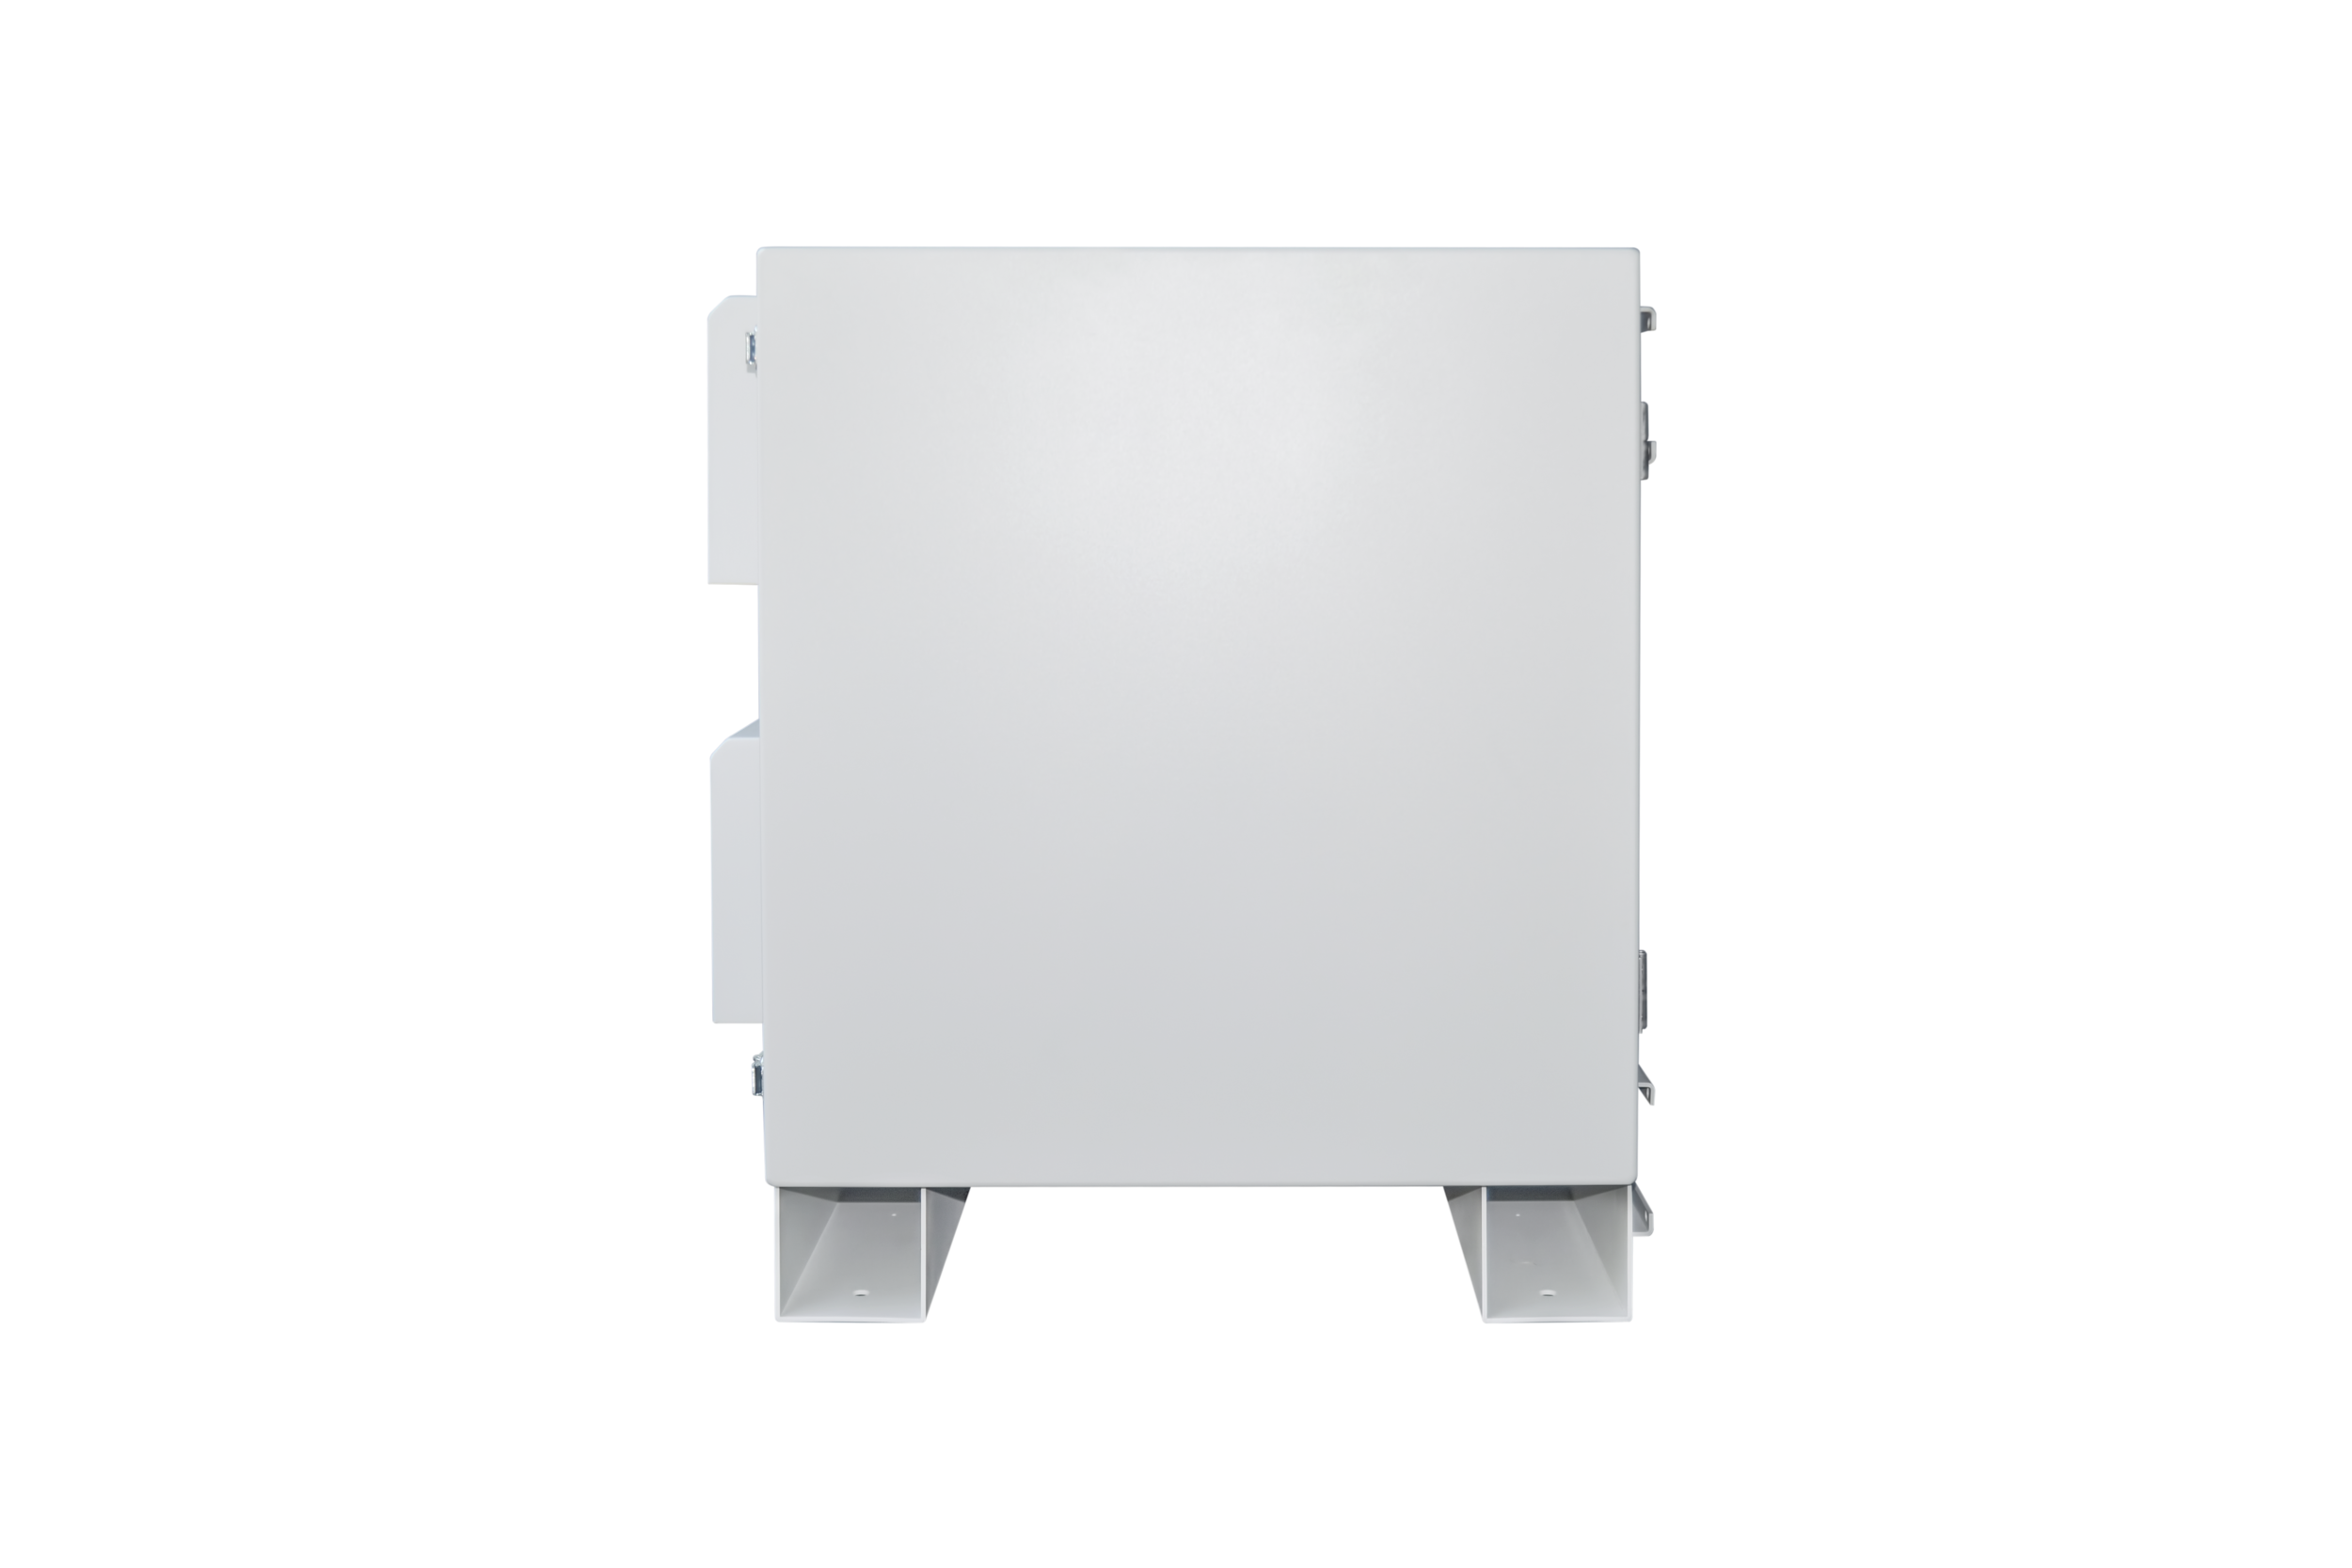 Keeping one side of the enclosure completely flush ensures you're able to place your IOIOBox up against a building or existing installations, without hindering its performance or function.